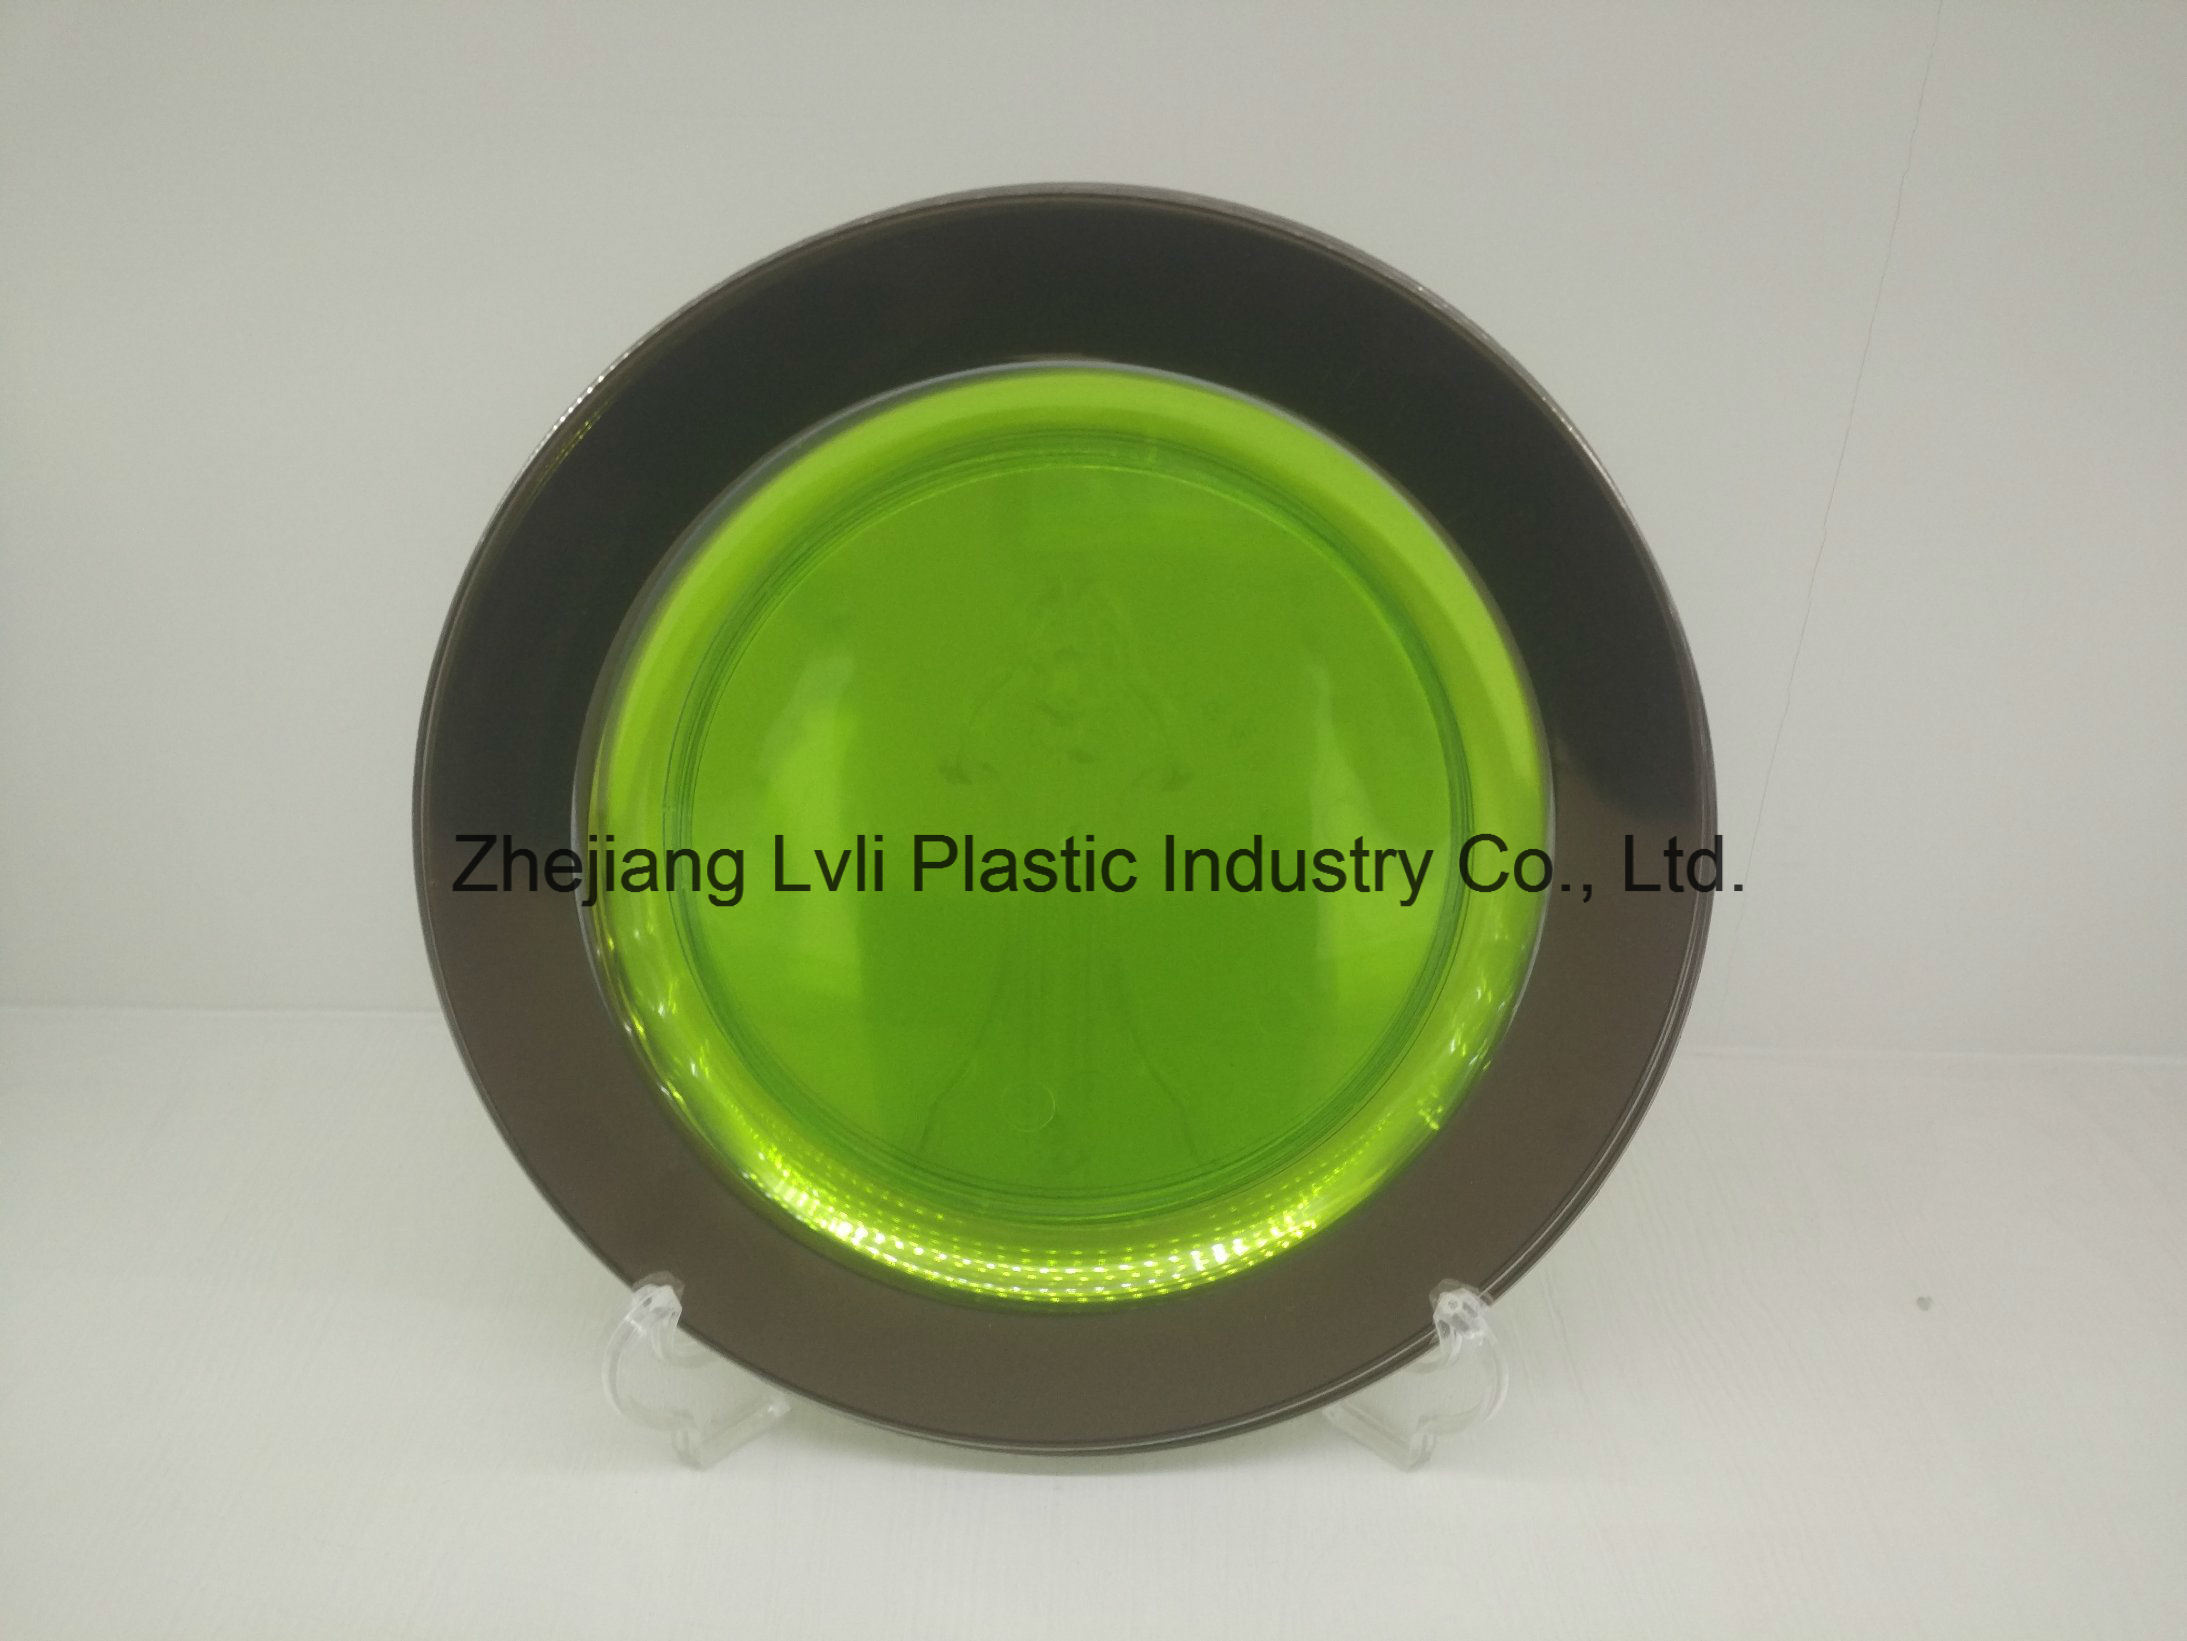 Plastic Plate, Disposable, Tableware, Tray, Dish, Colorful, PS, SGS, Silver Rim Plate, PA-02